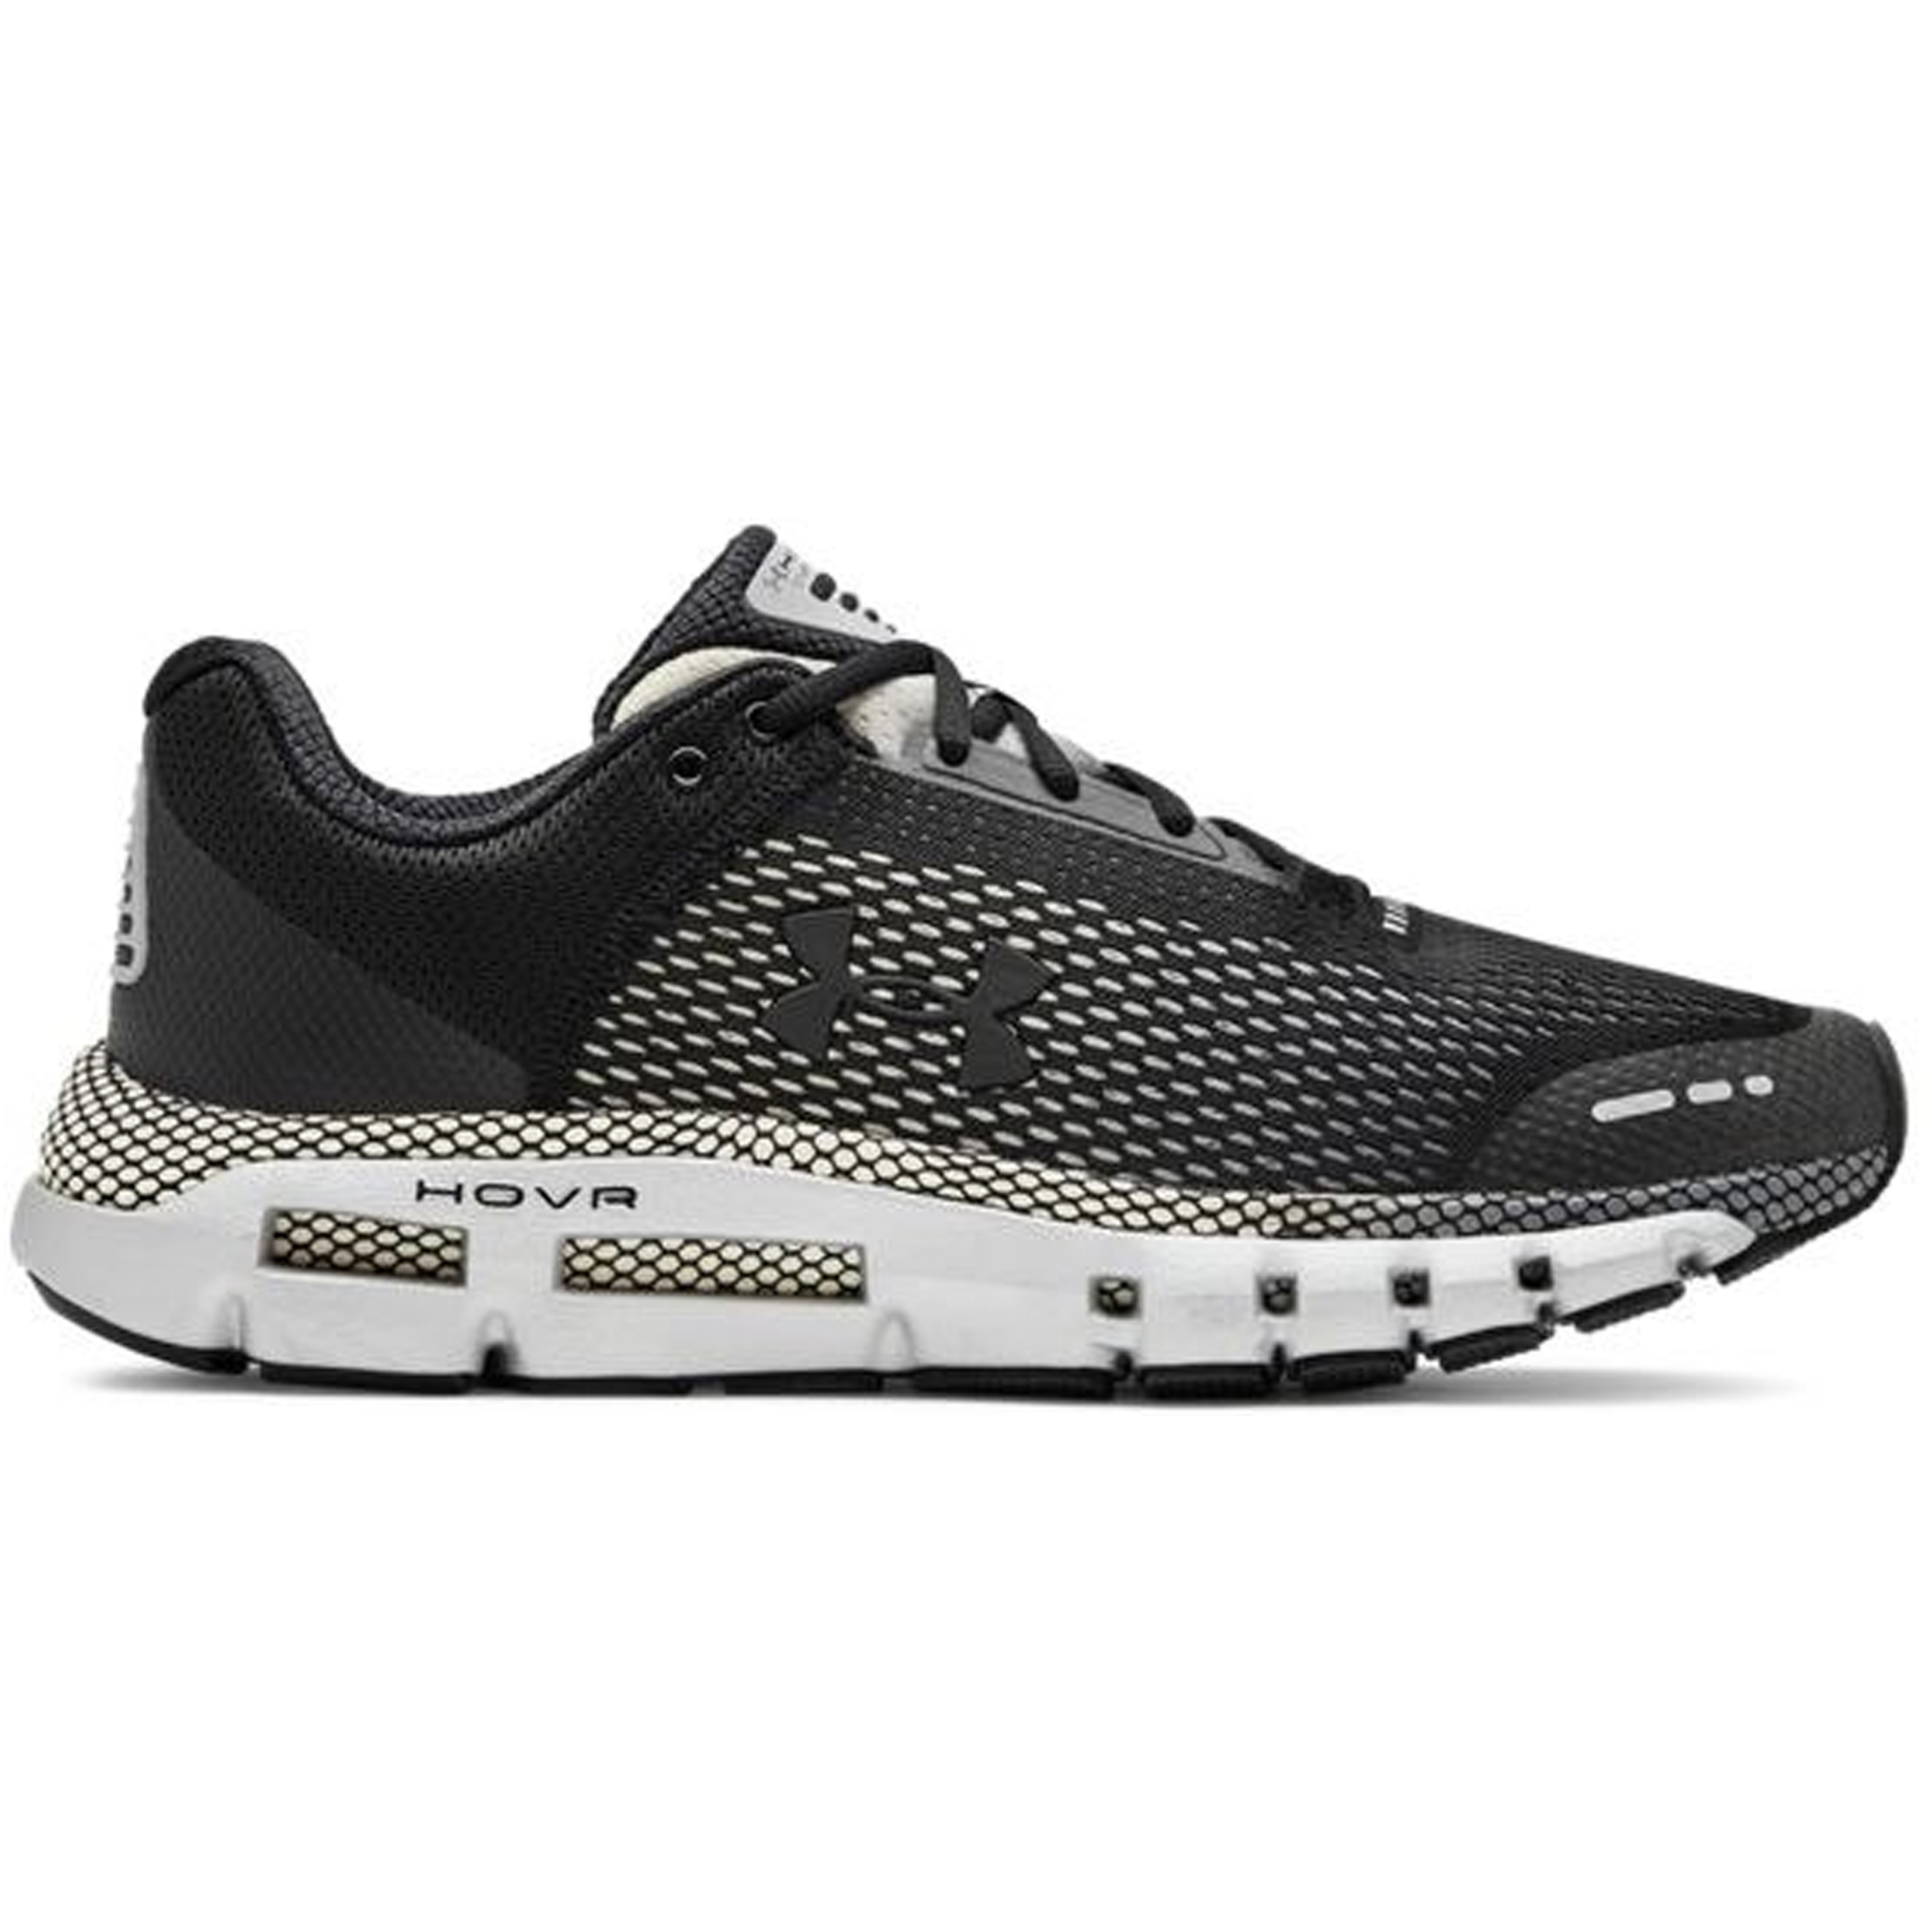 Under Armour Hovr Infinite Black Pitch Gray (3021395-004)